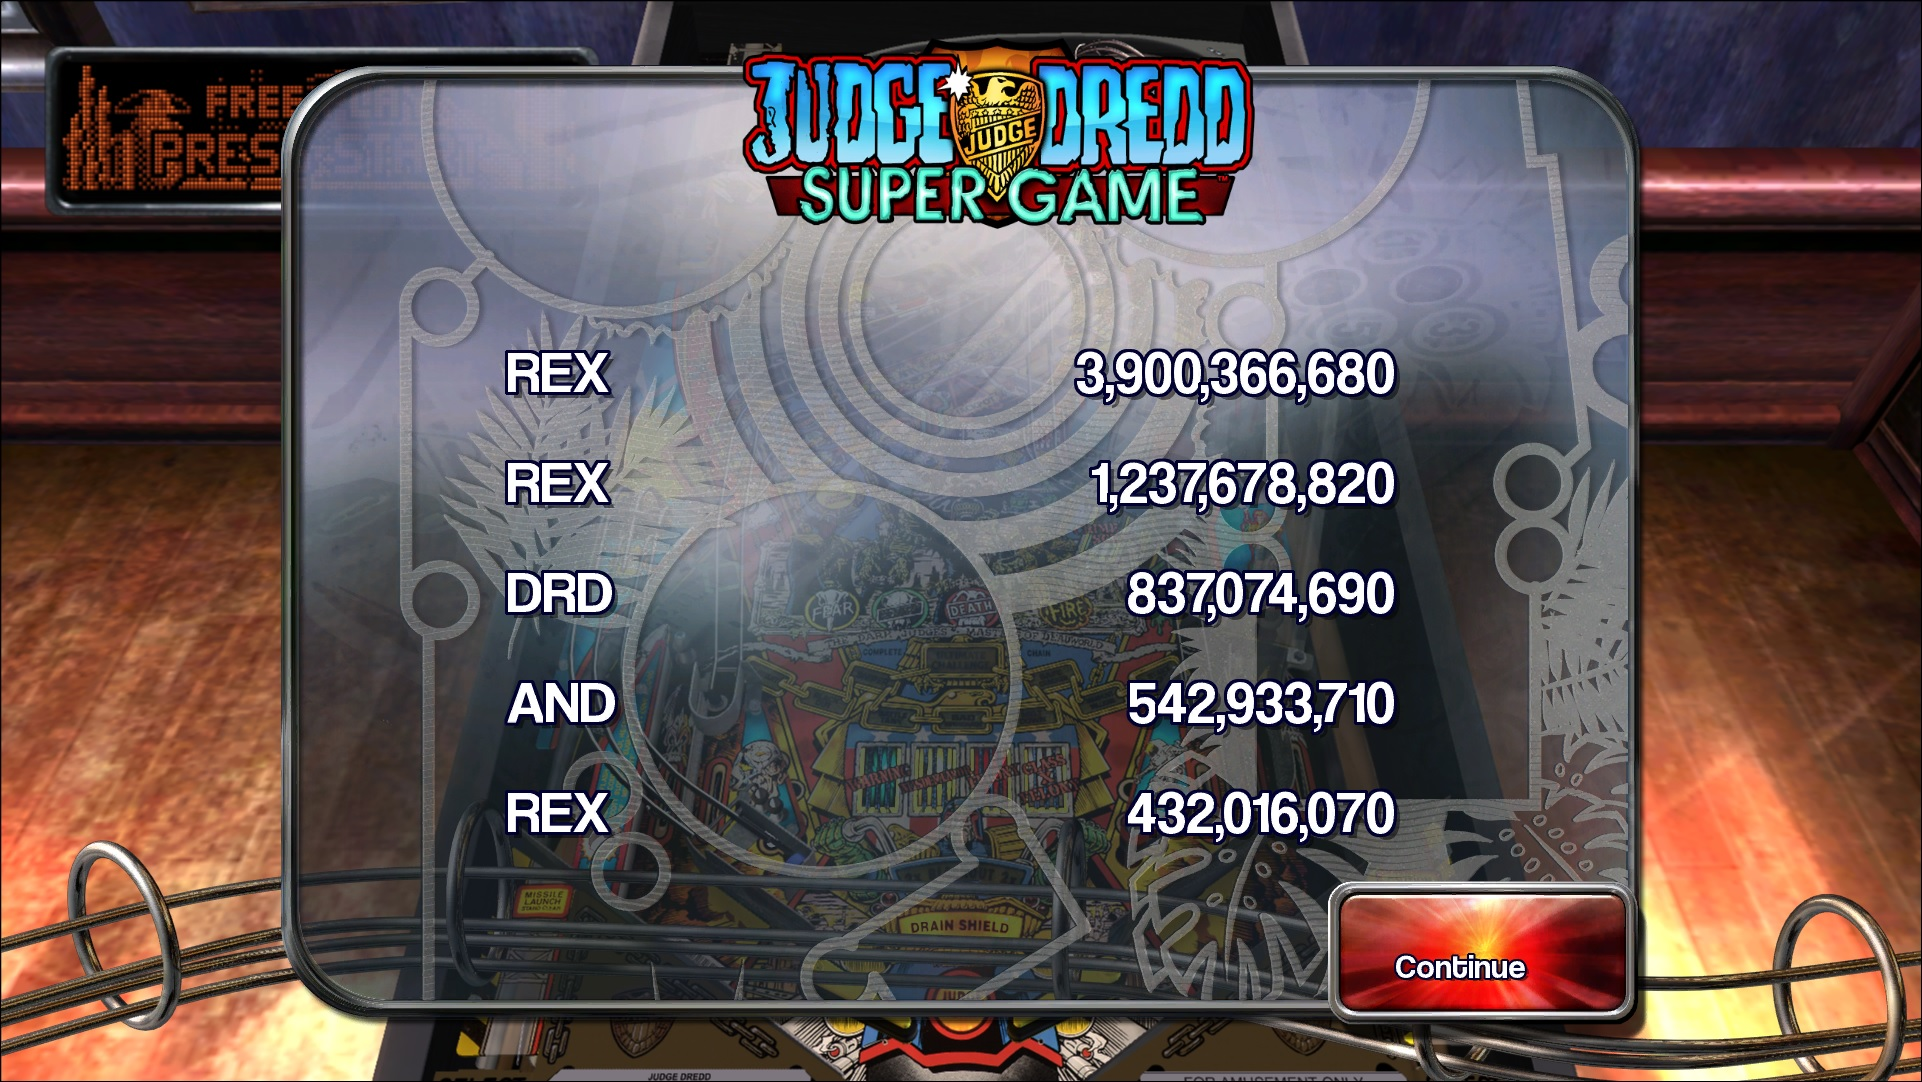 rexeus: Pinball Arcade: Judge Dredd™ (PC) 3,900,366,680 points on 2016-06-24 16:20:27